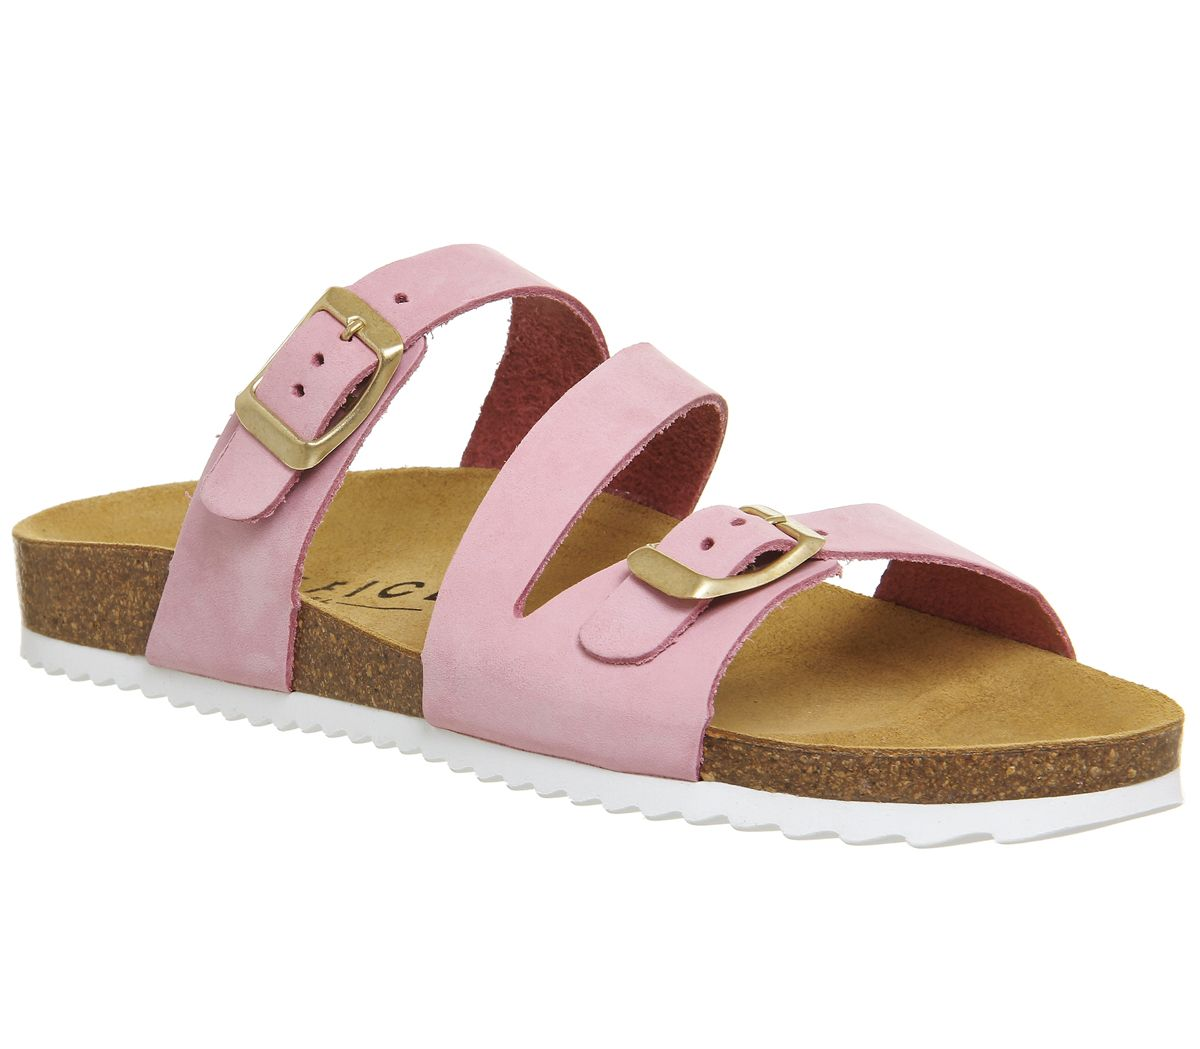 Office Bounty Cross Strap Sandals, Pink